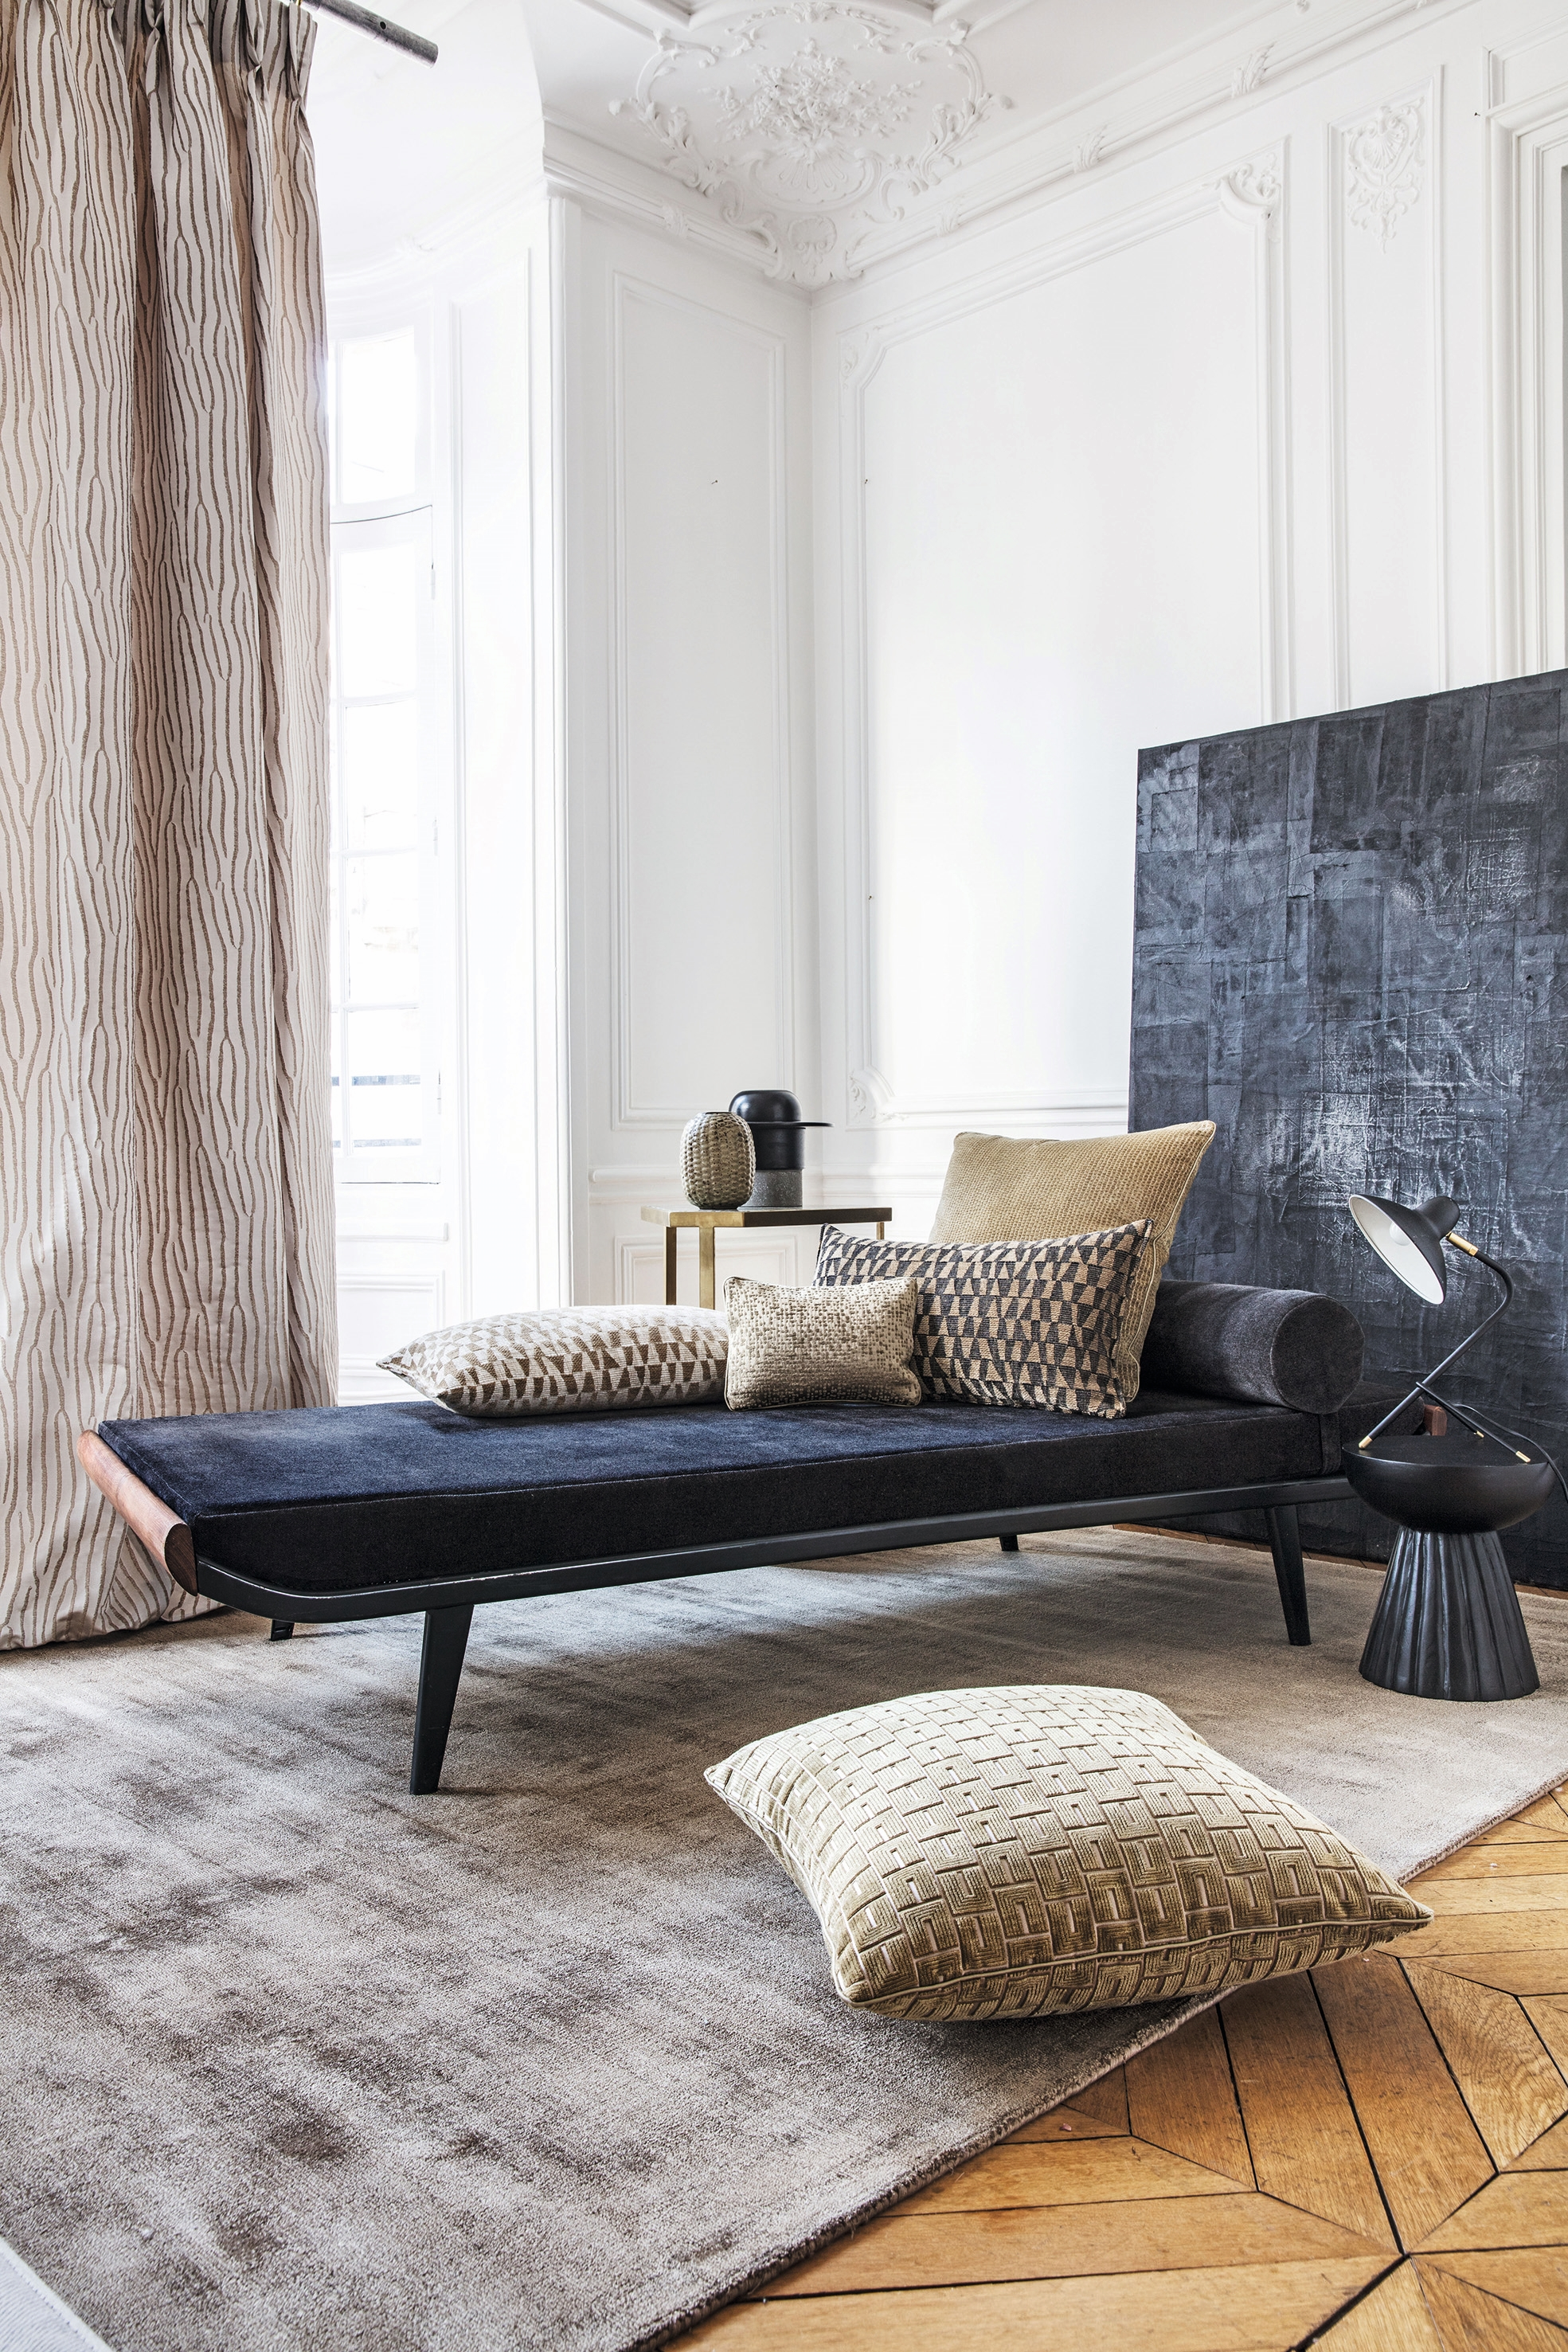 bettwsche modern best einrichten mit zara home einrichten mit zara home zara bettwsche modern. Black Bedroom Furniture Sets. Home Design Ideas